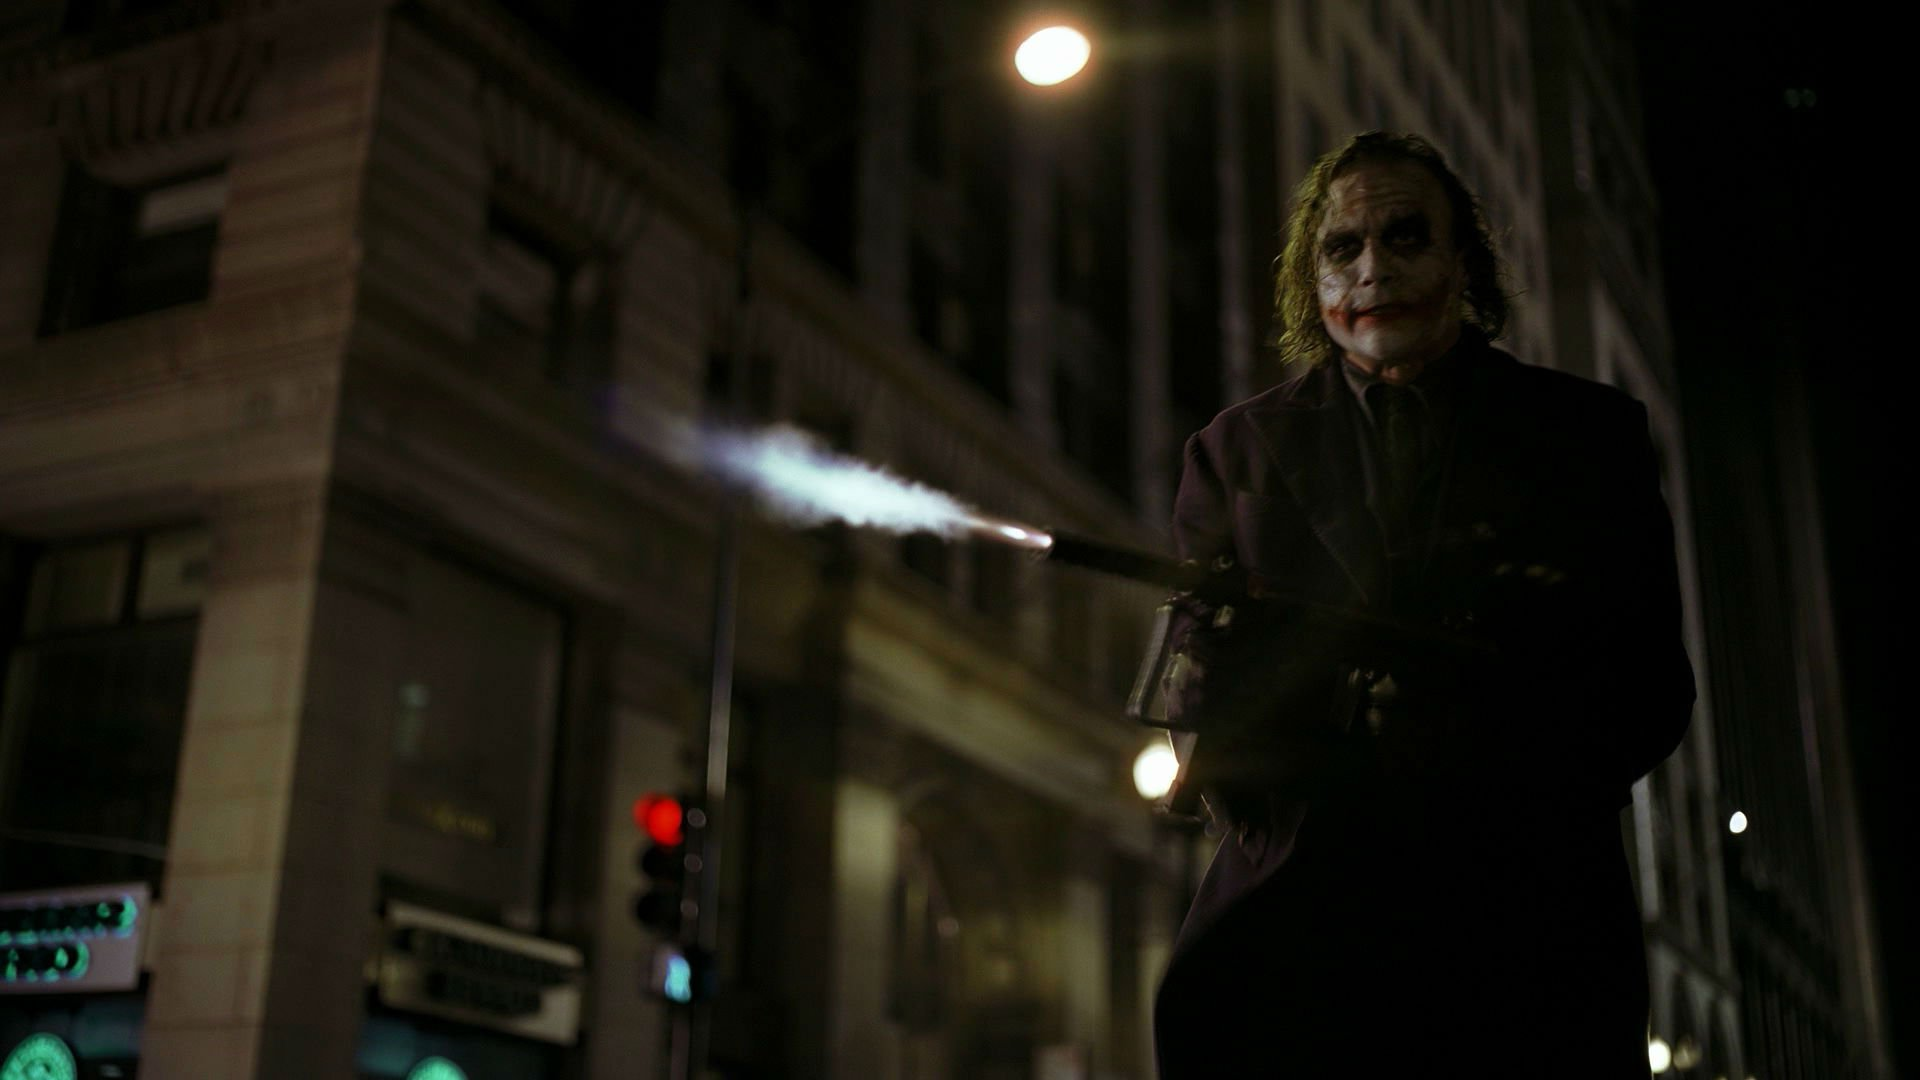 joker machine gun